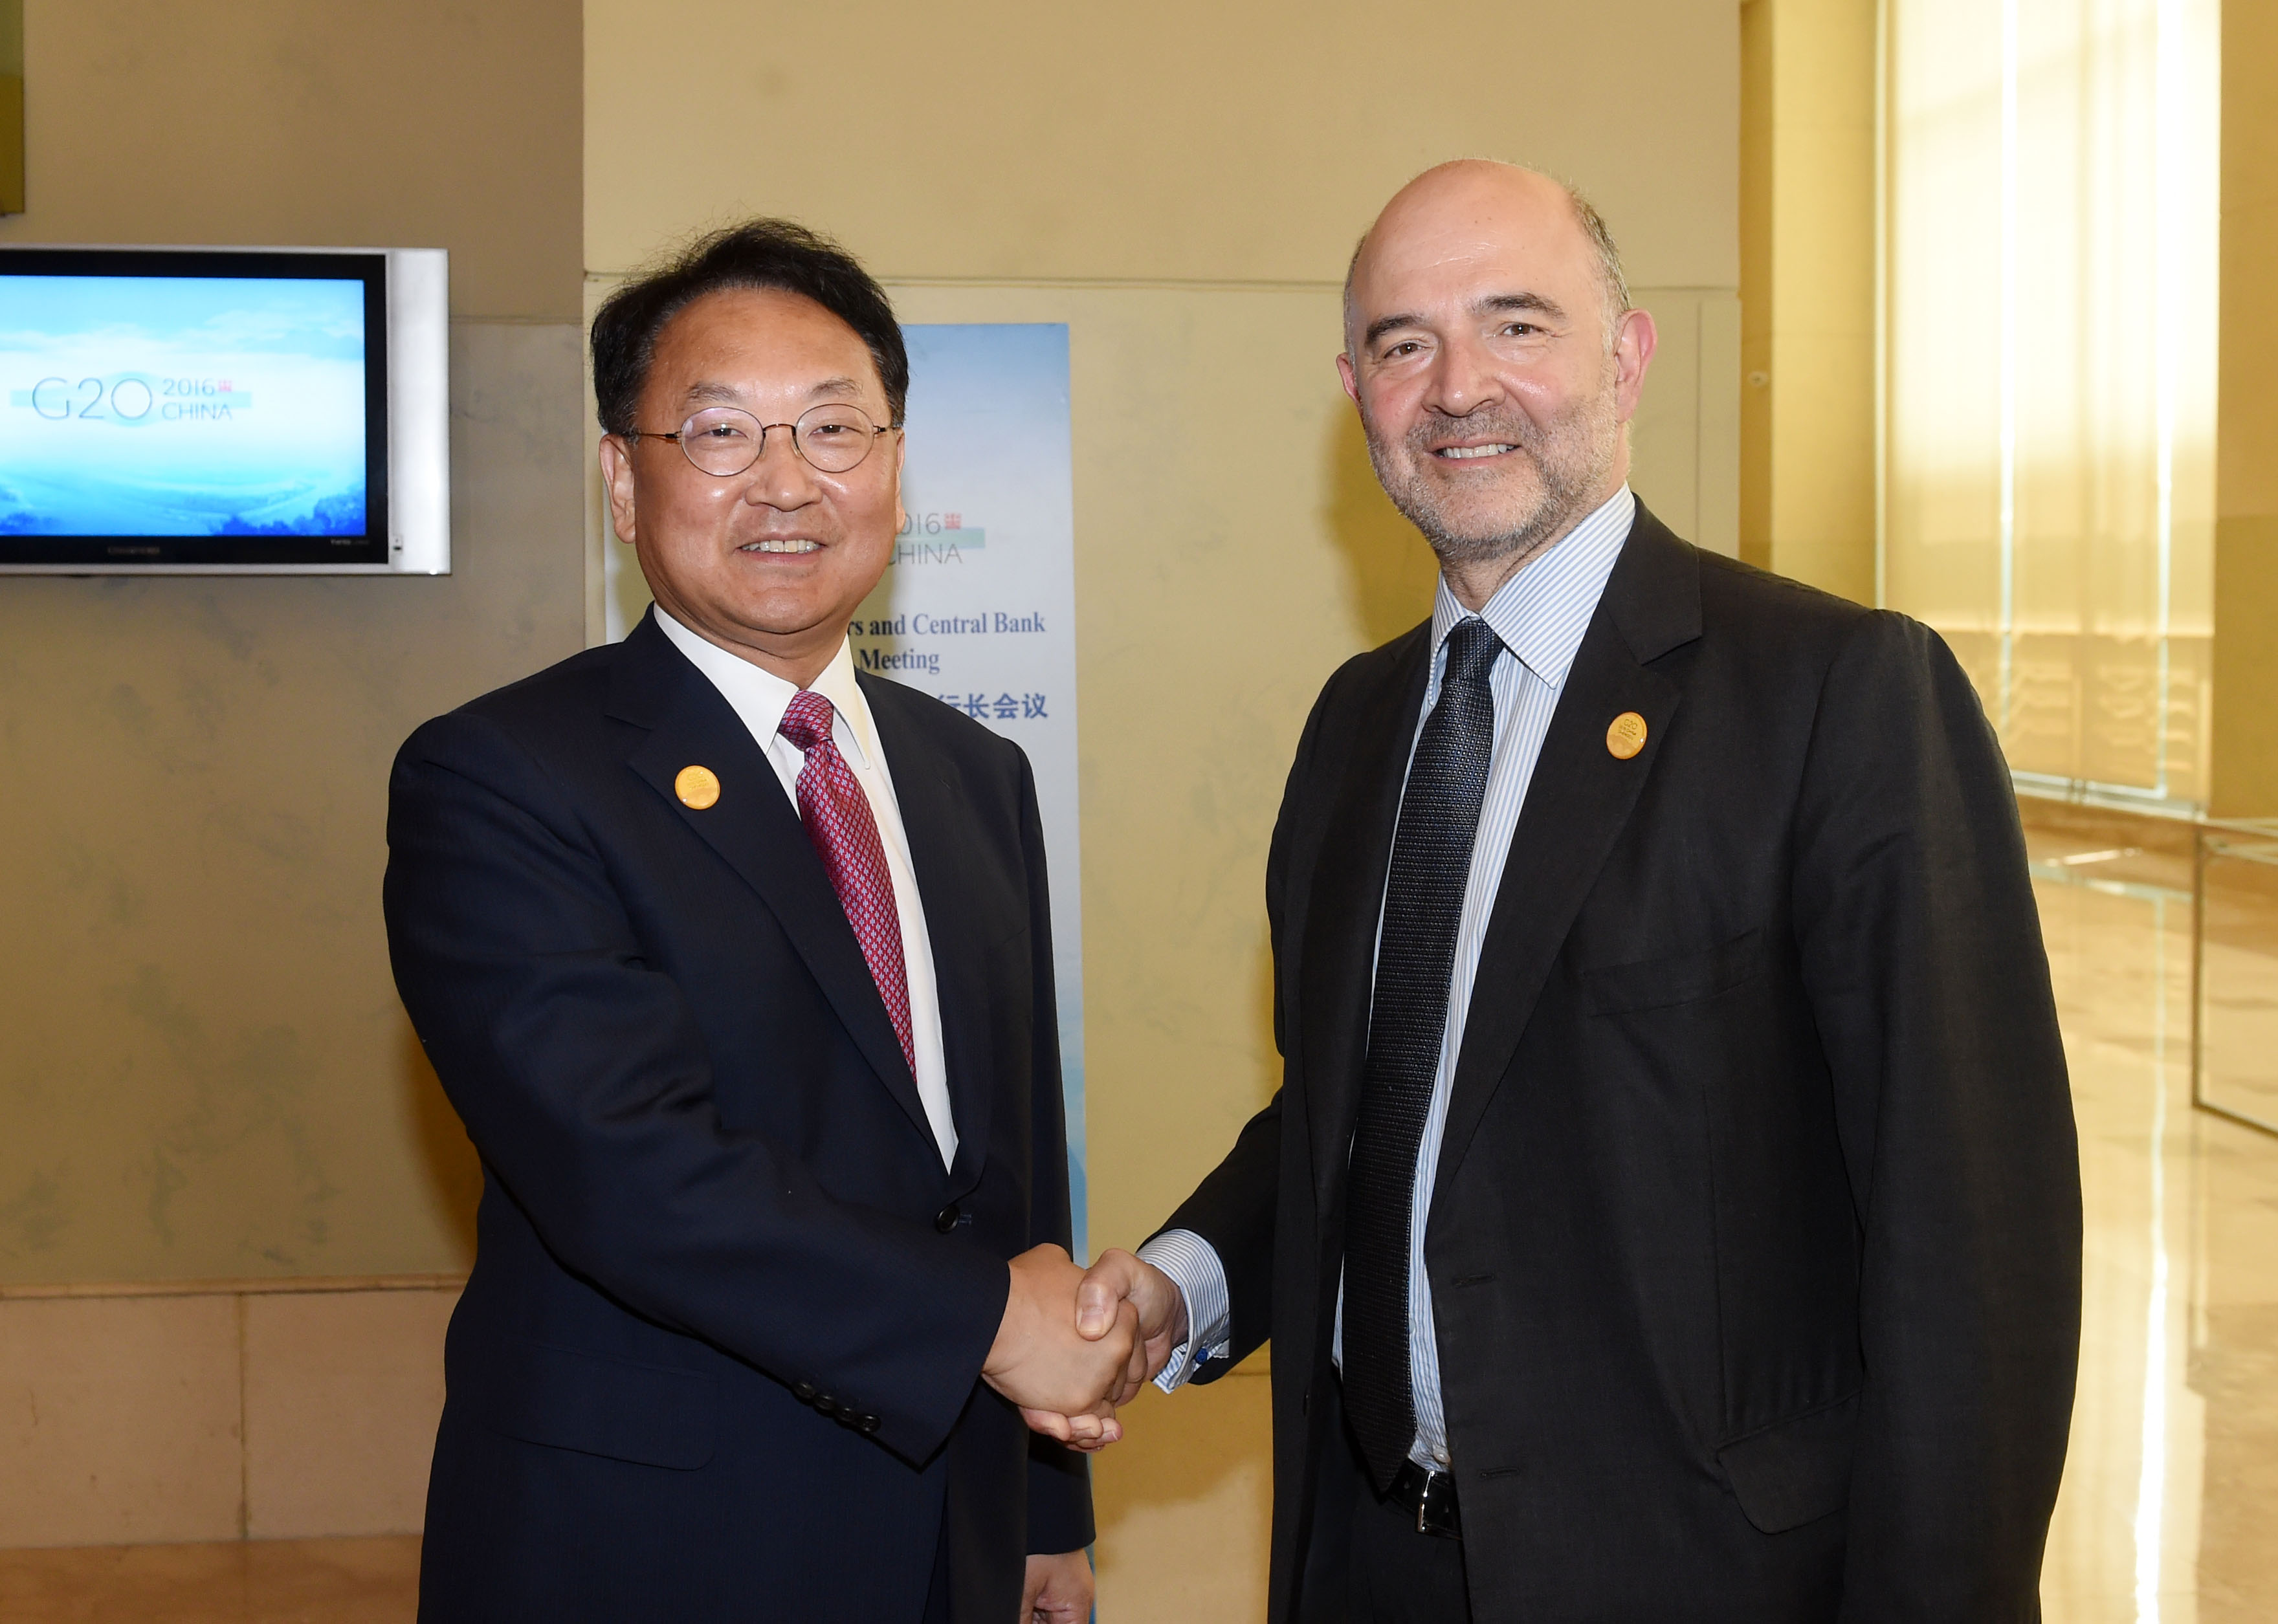 Deputy Prime Minister Yoo meets with European Commissioner for Economic and Financial Affairs Pierre Moscovici in Chengdu, China